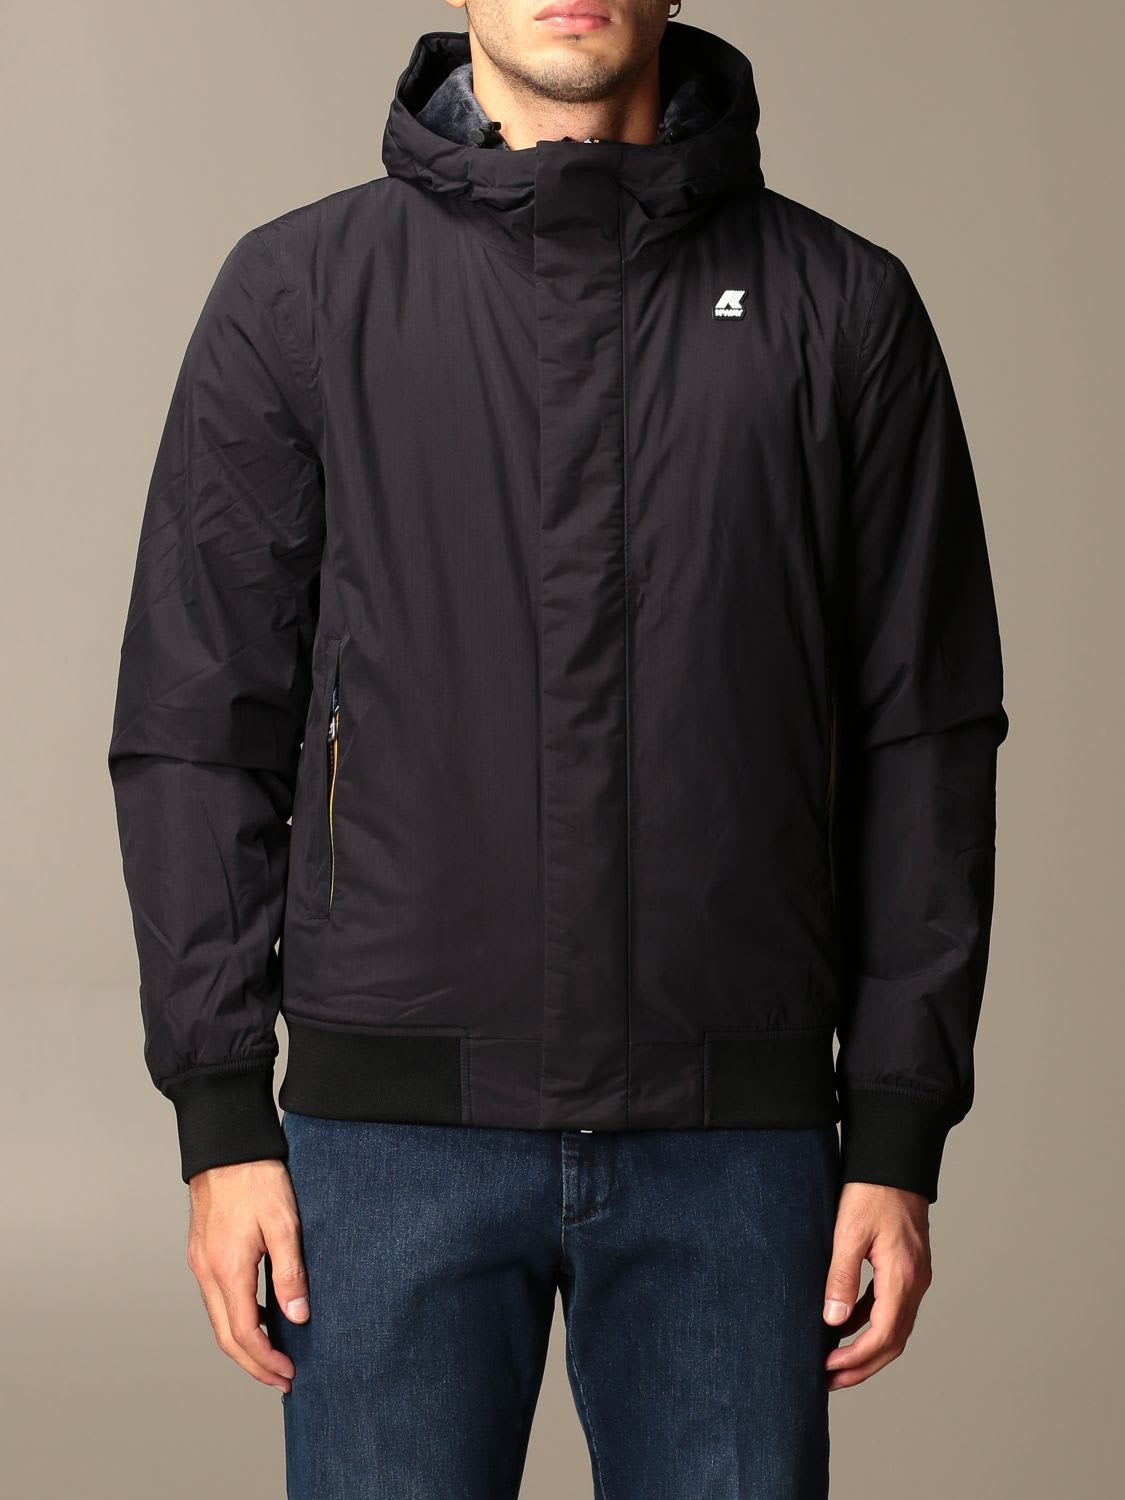 K-way Jacket Justin Ripstop Marmot  Jacket With Hood In Black